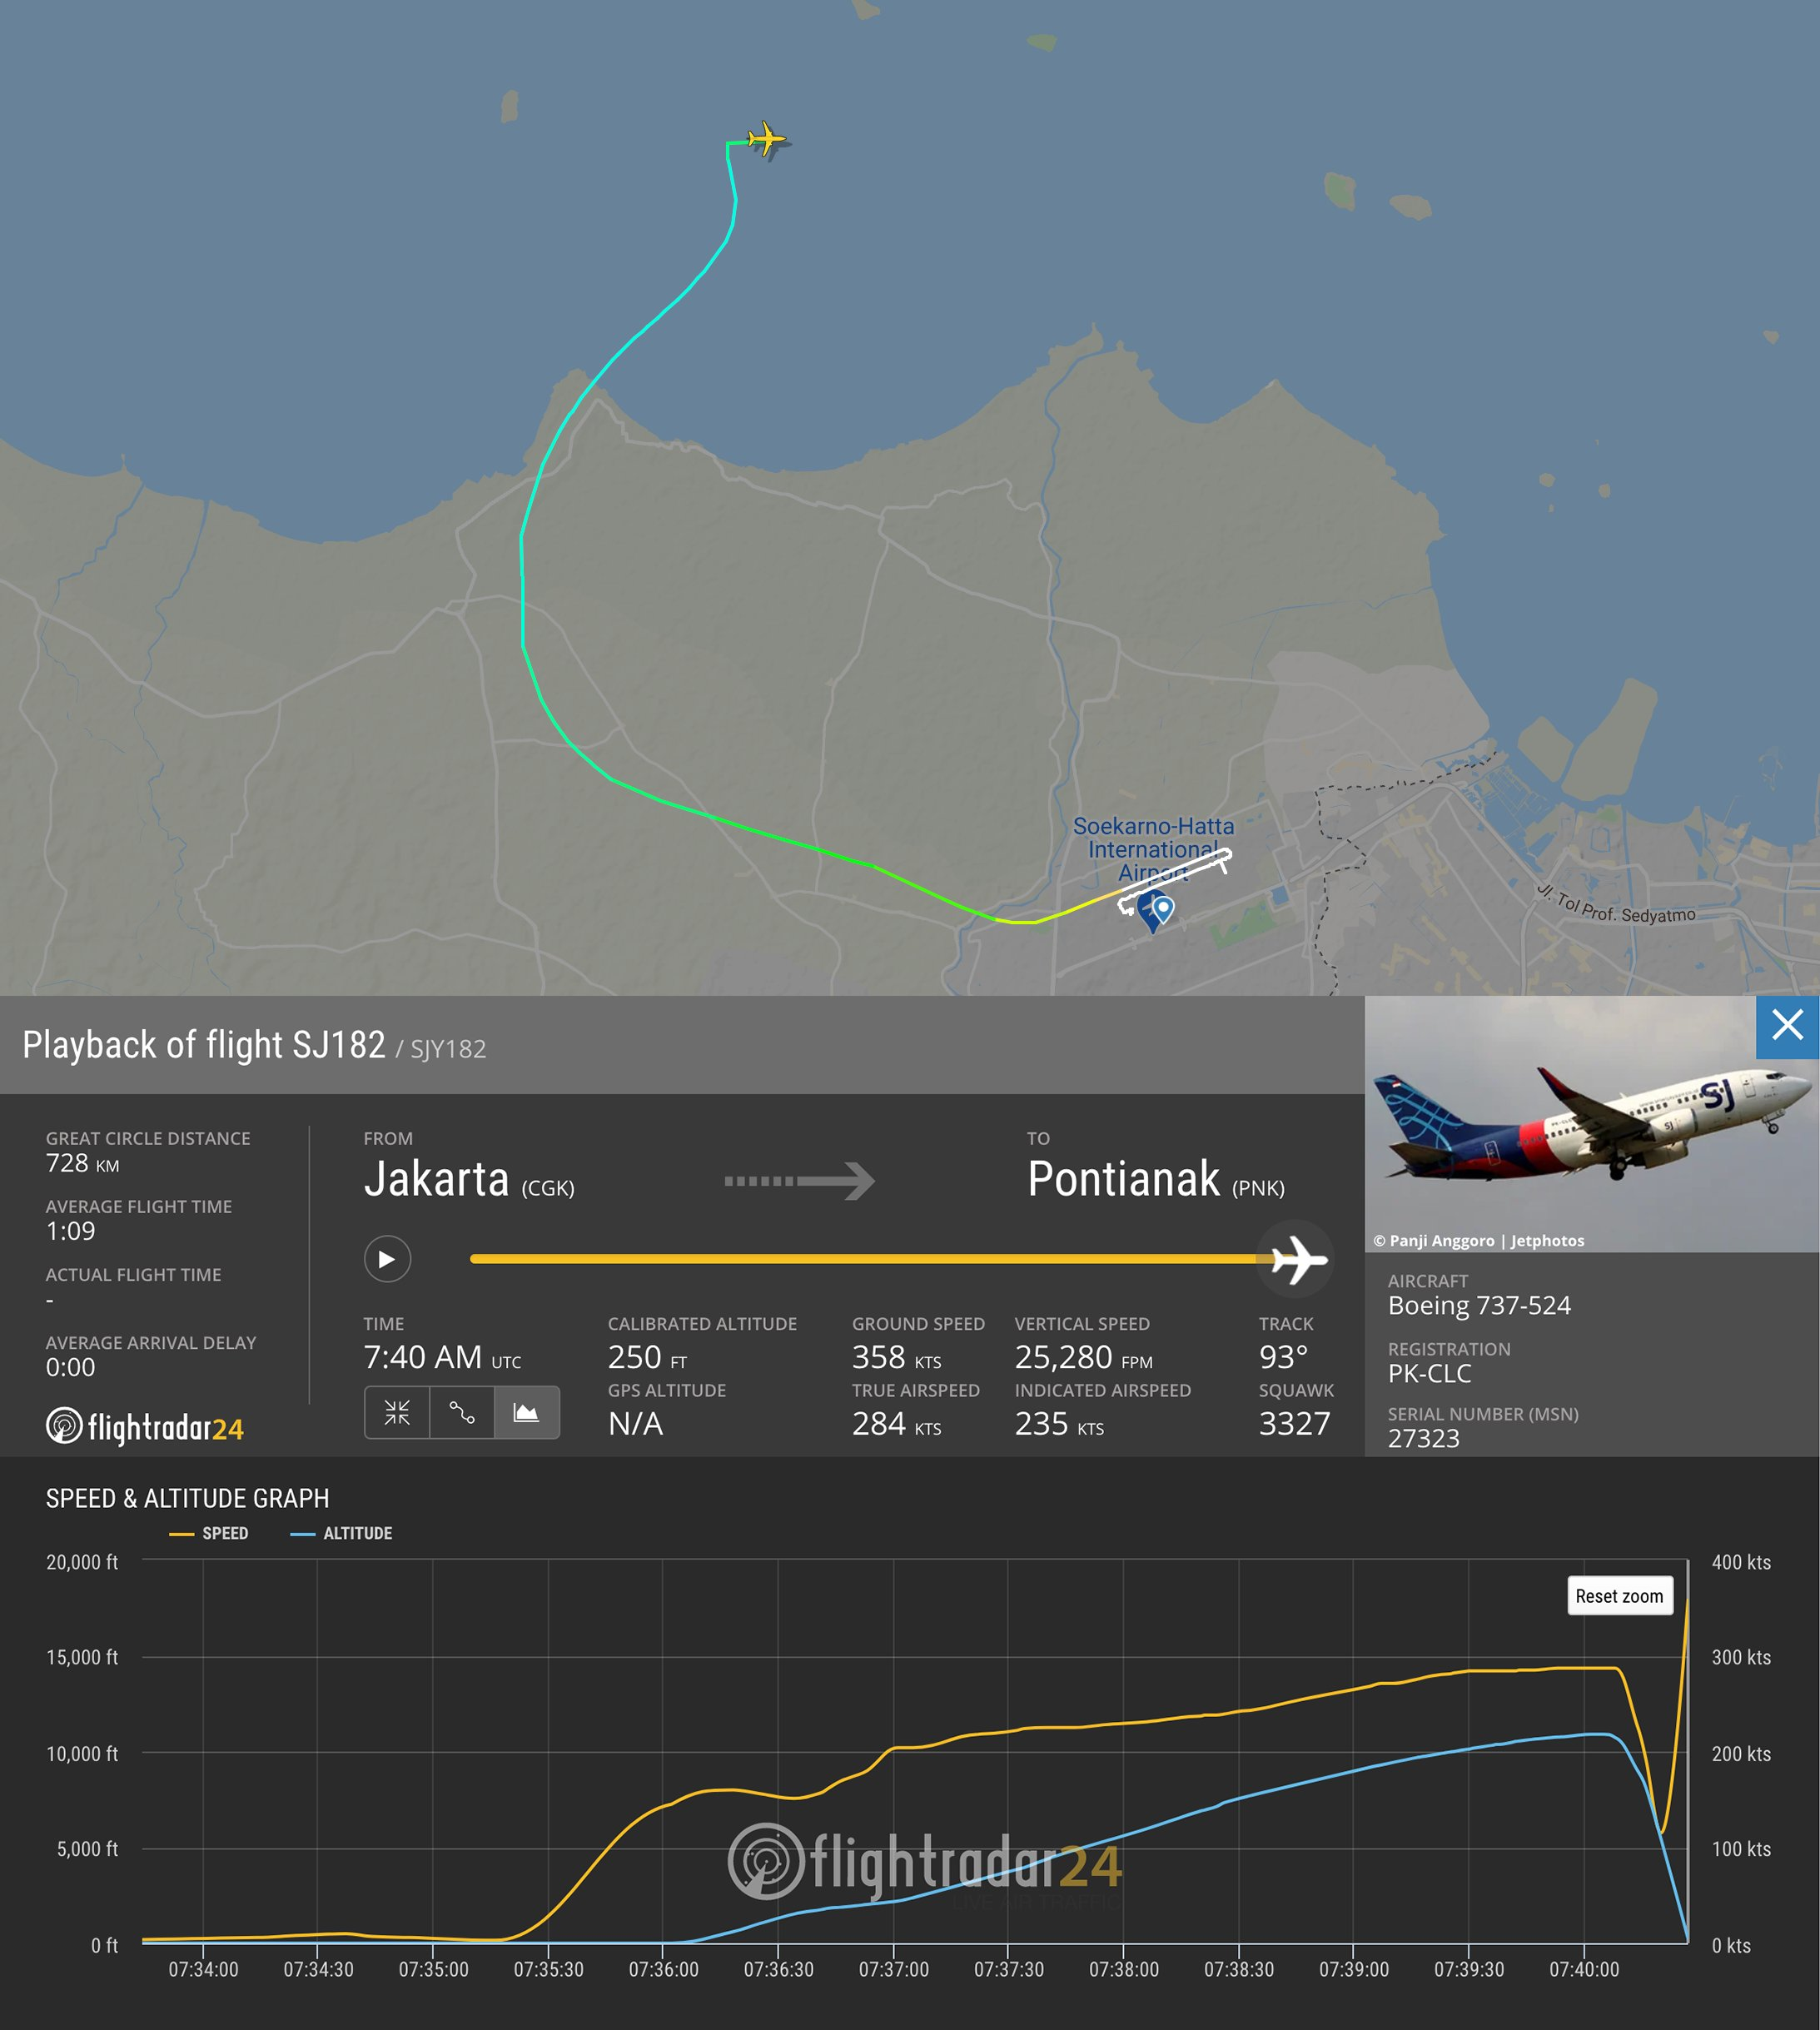 Flight path and speed and altitude graph of flight SJ182